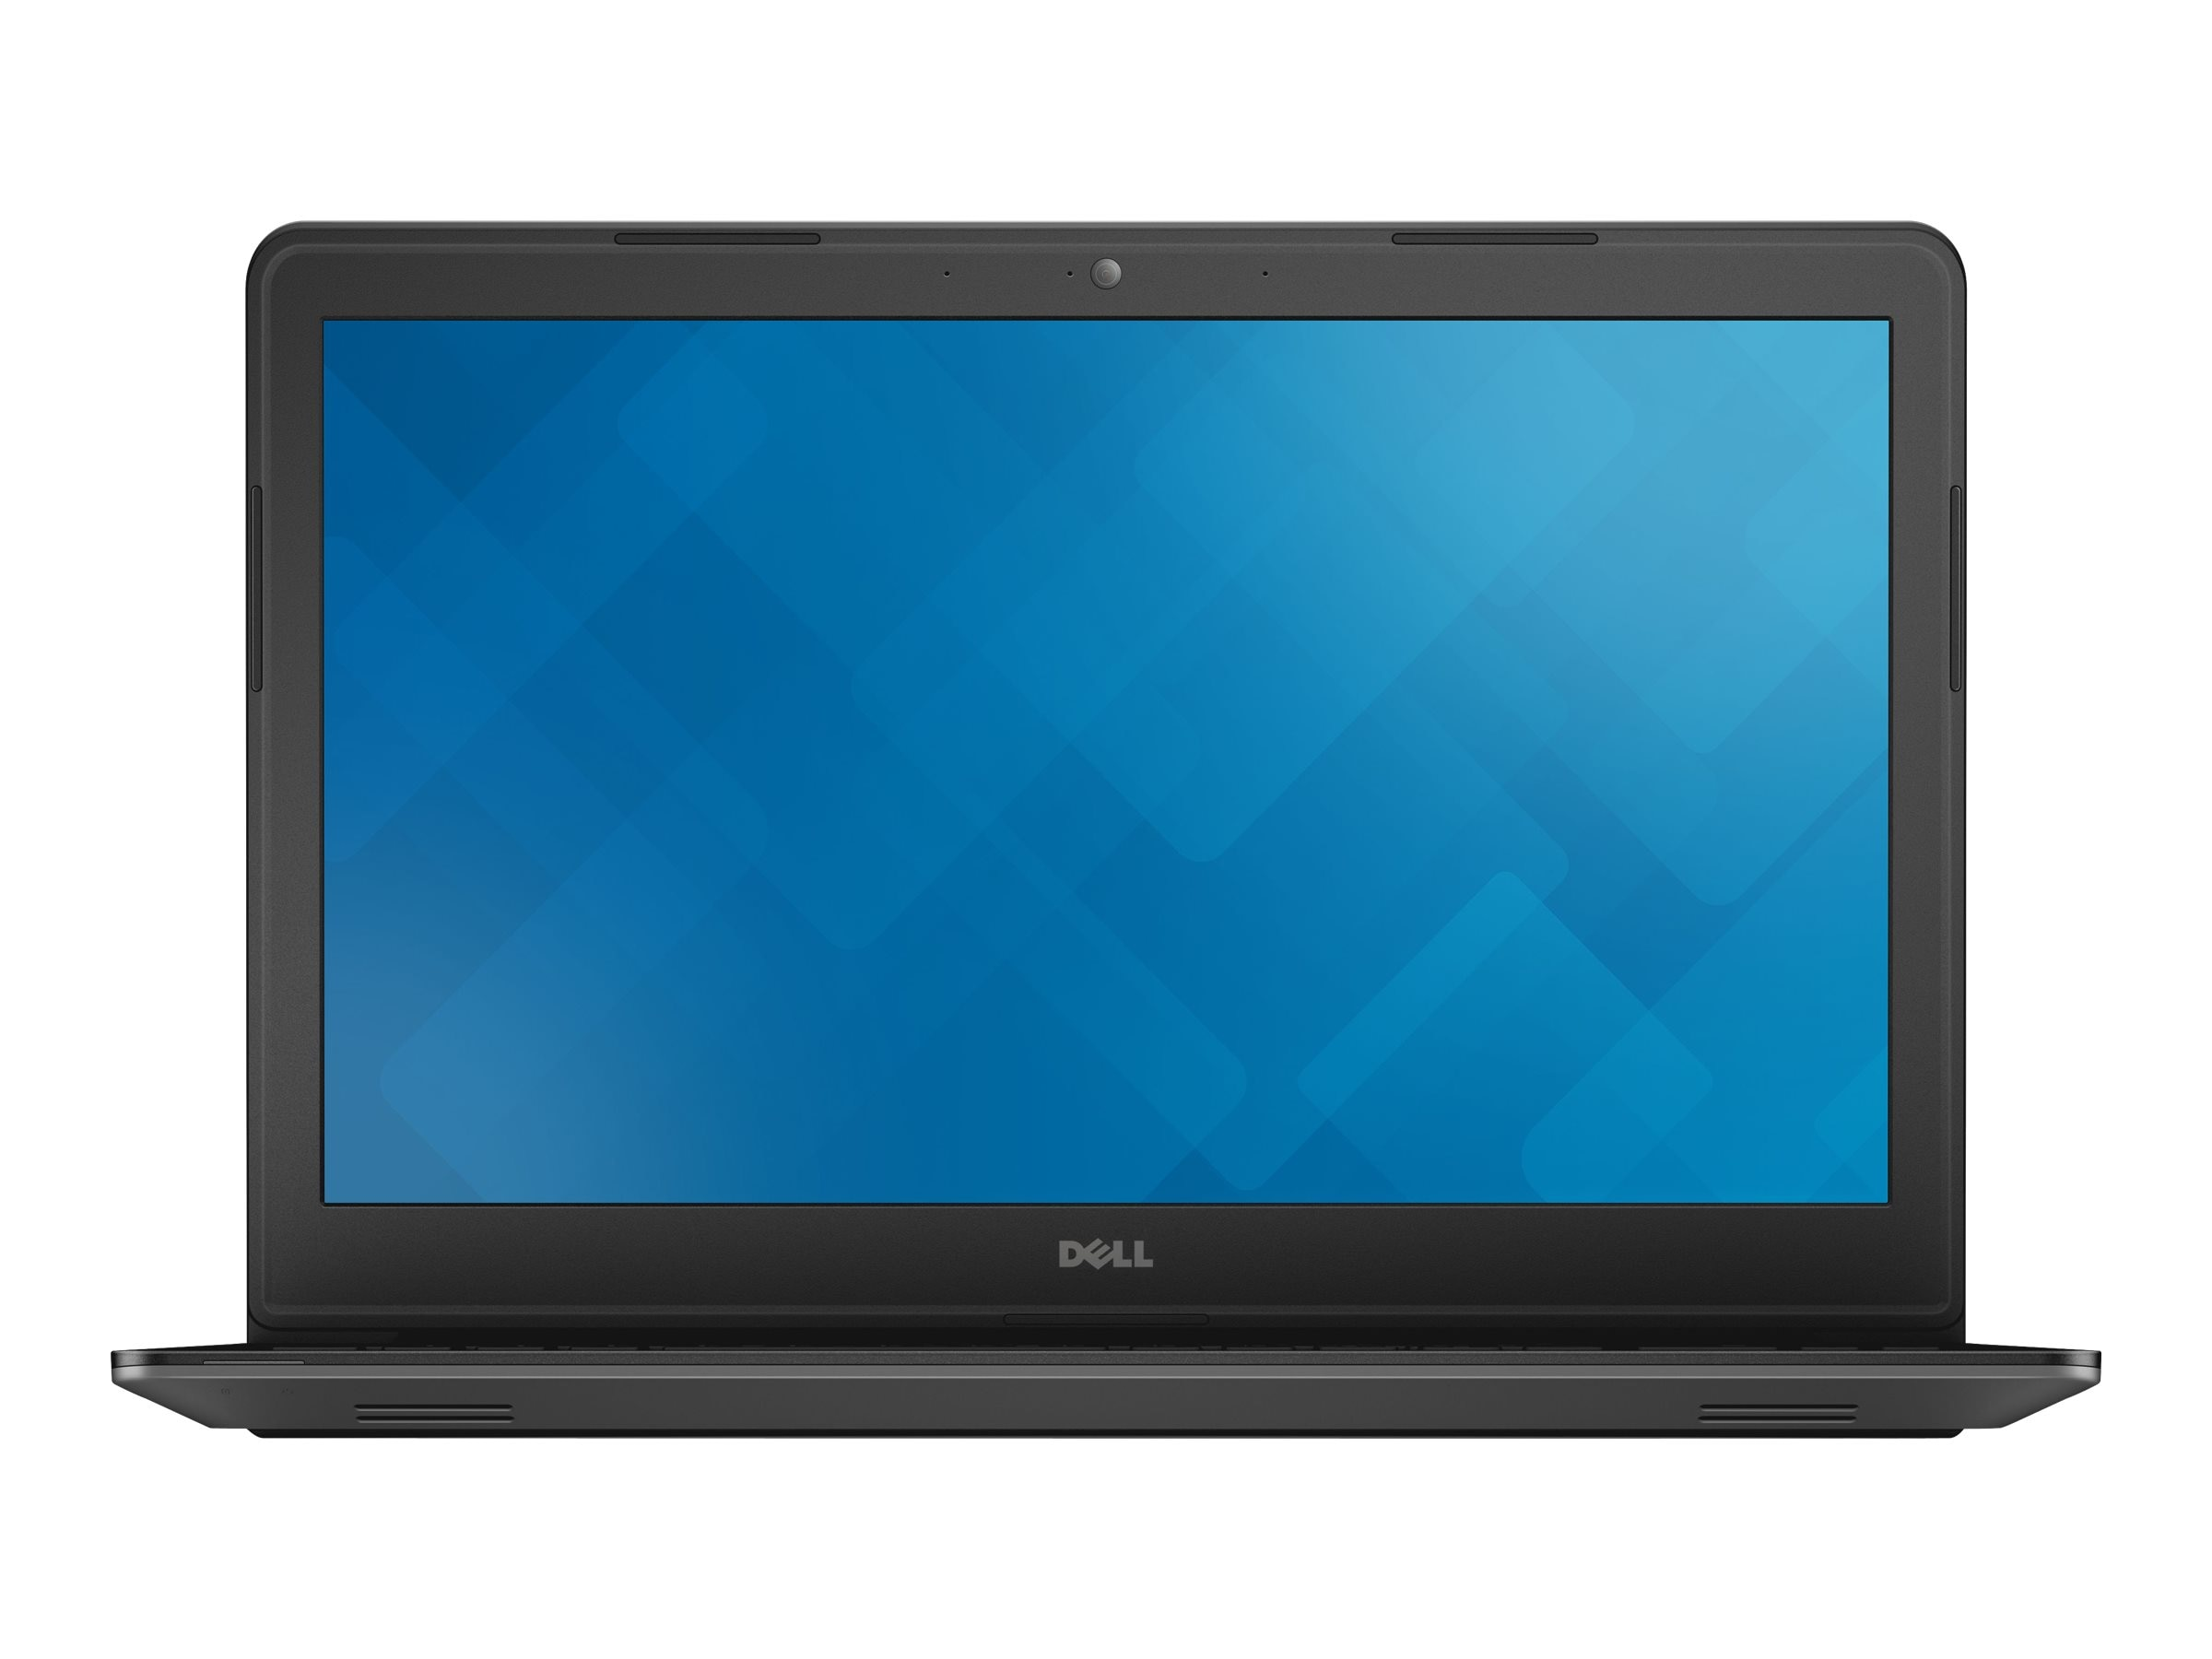 Dell Latitude 3550 2.0GHz Core i3 15.6in display, PR9R1, 18442261, Notebooks